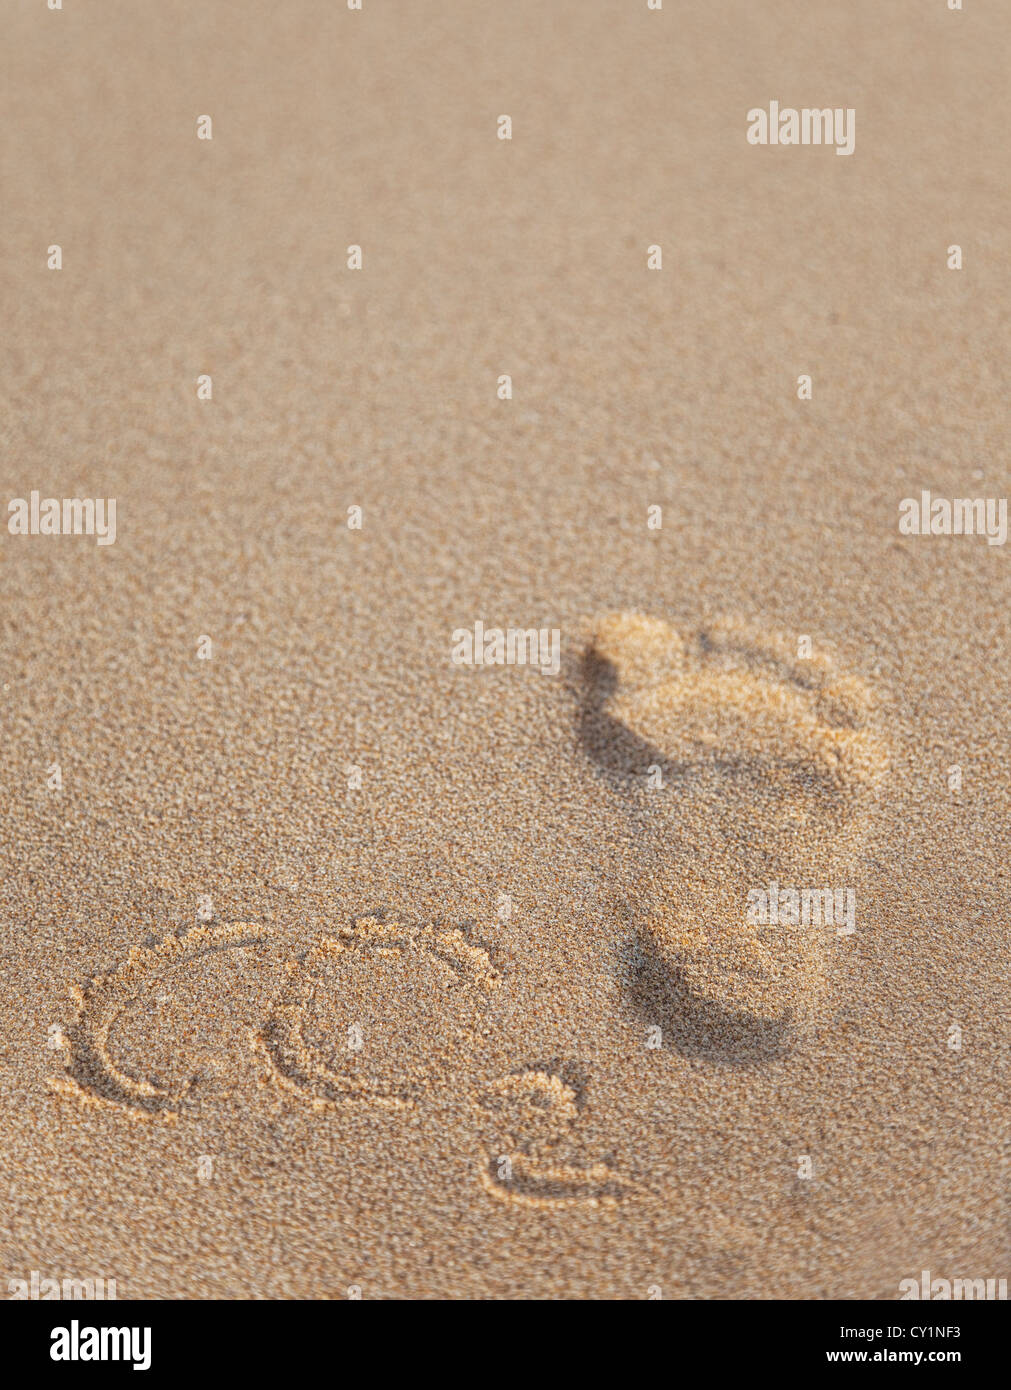 Carbon footprint concept - Stock Image